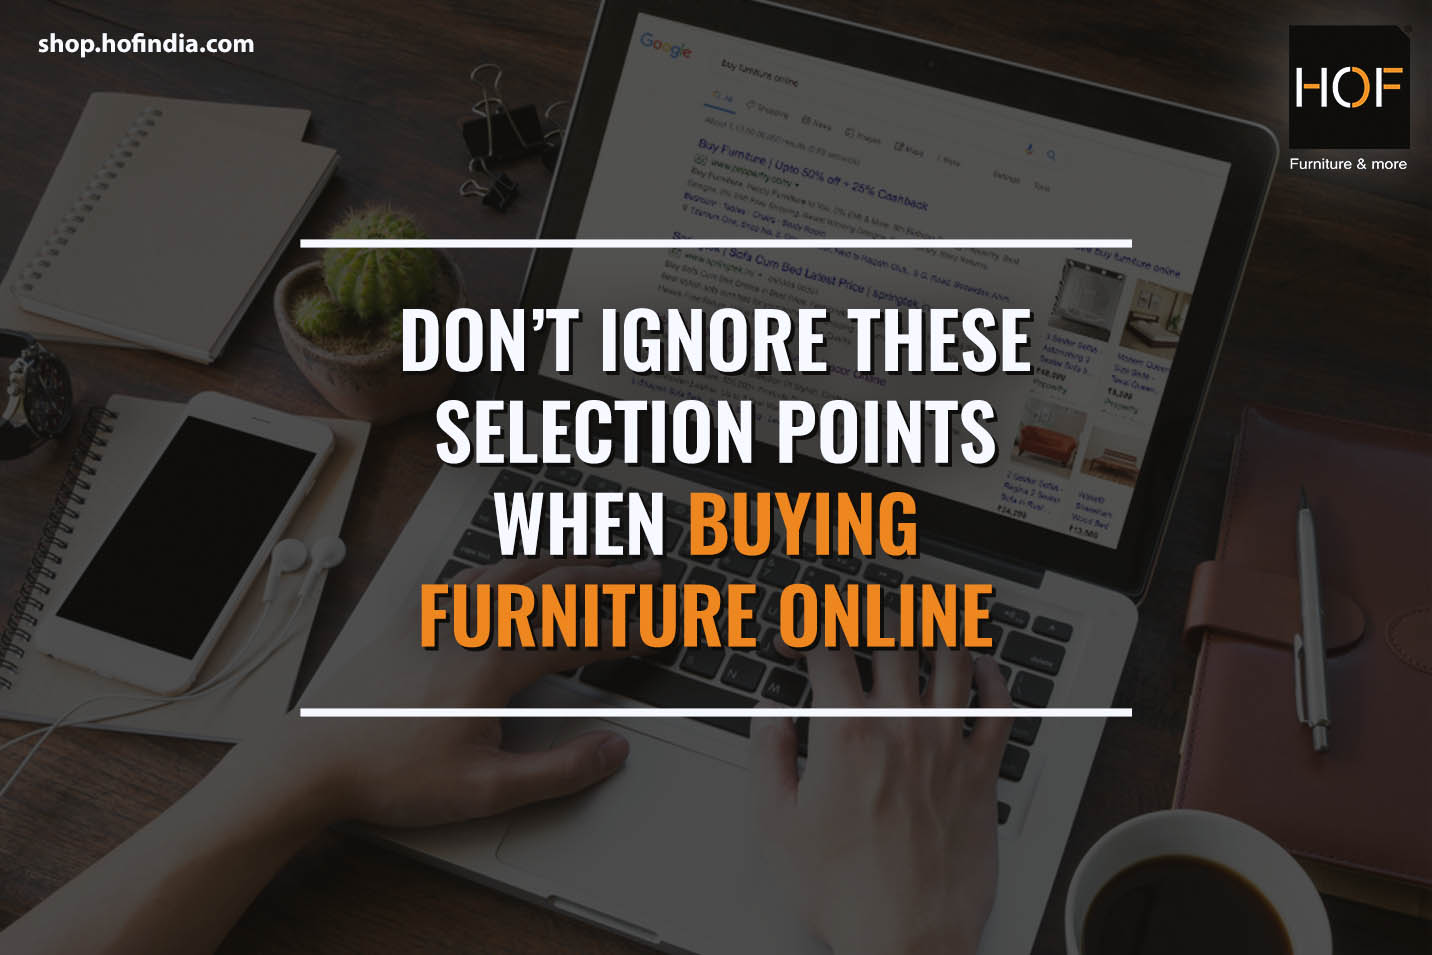 Don't ignore these selection points when buying furniture online